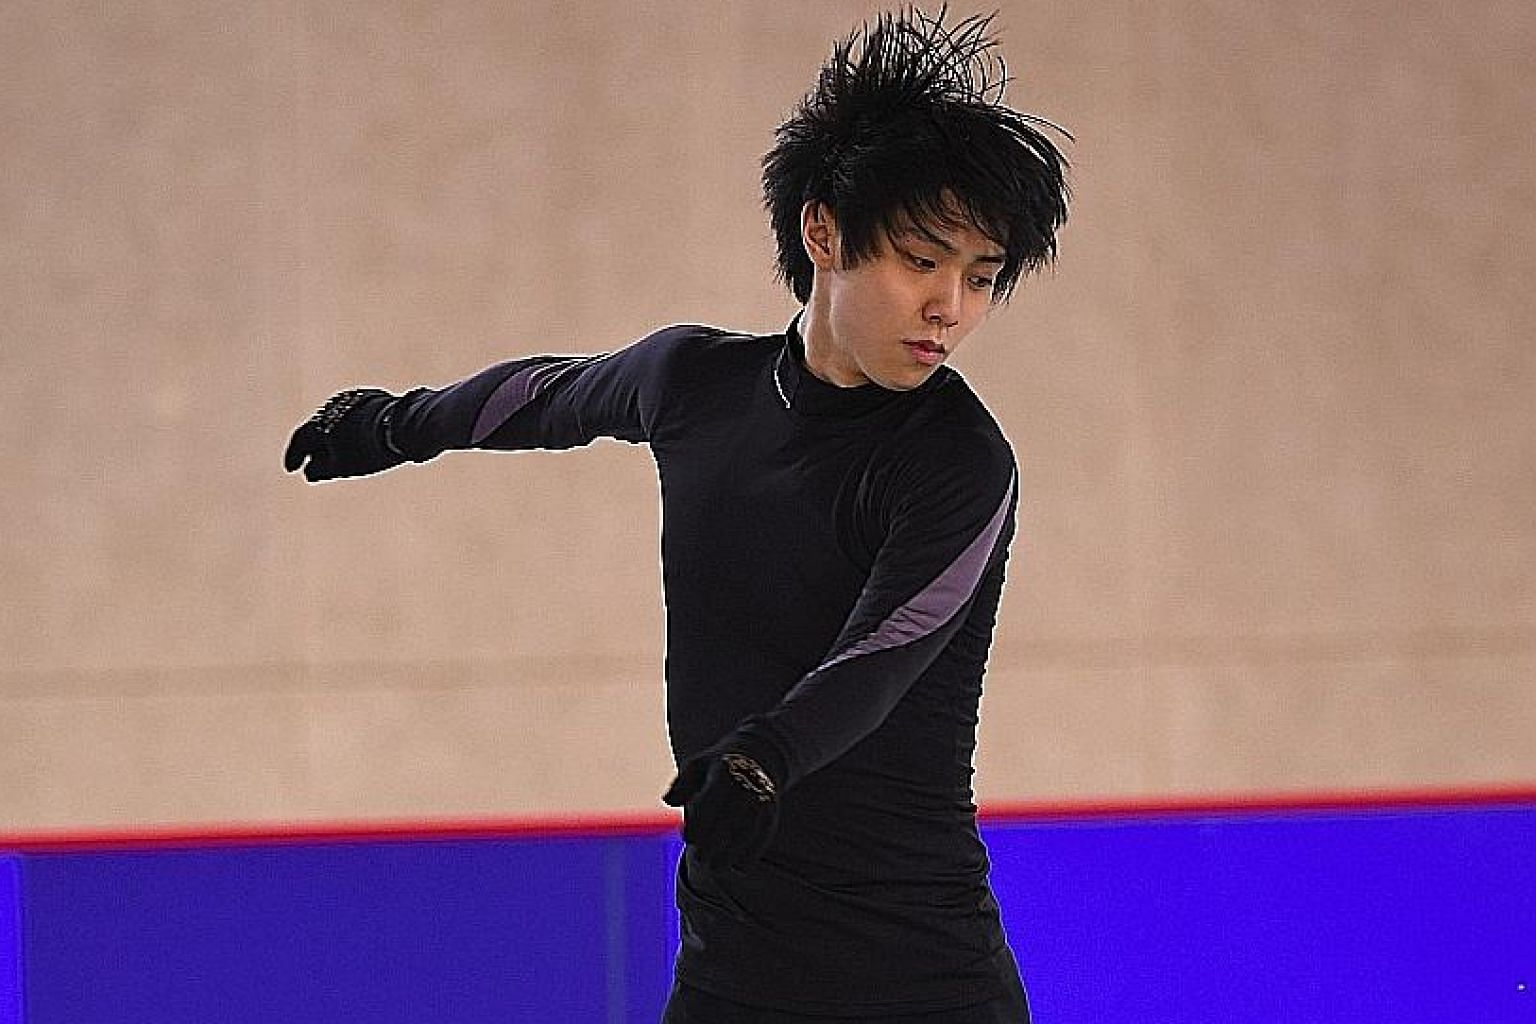 The 2011 earthquake damaged Yuzuru Hanyu's home but not his spirit. Now, the world waits to see if the 2014 Olympic champion can come back from another setback.